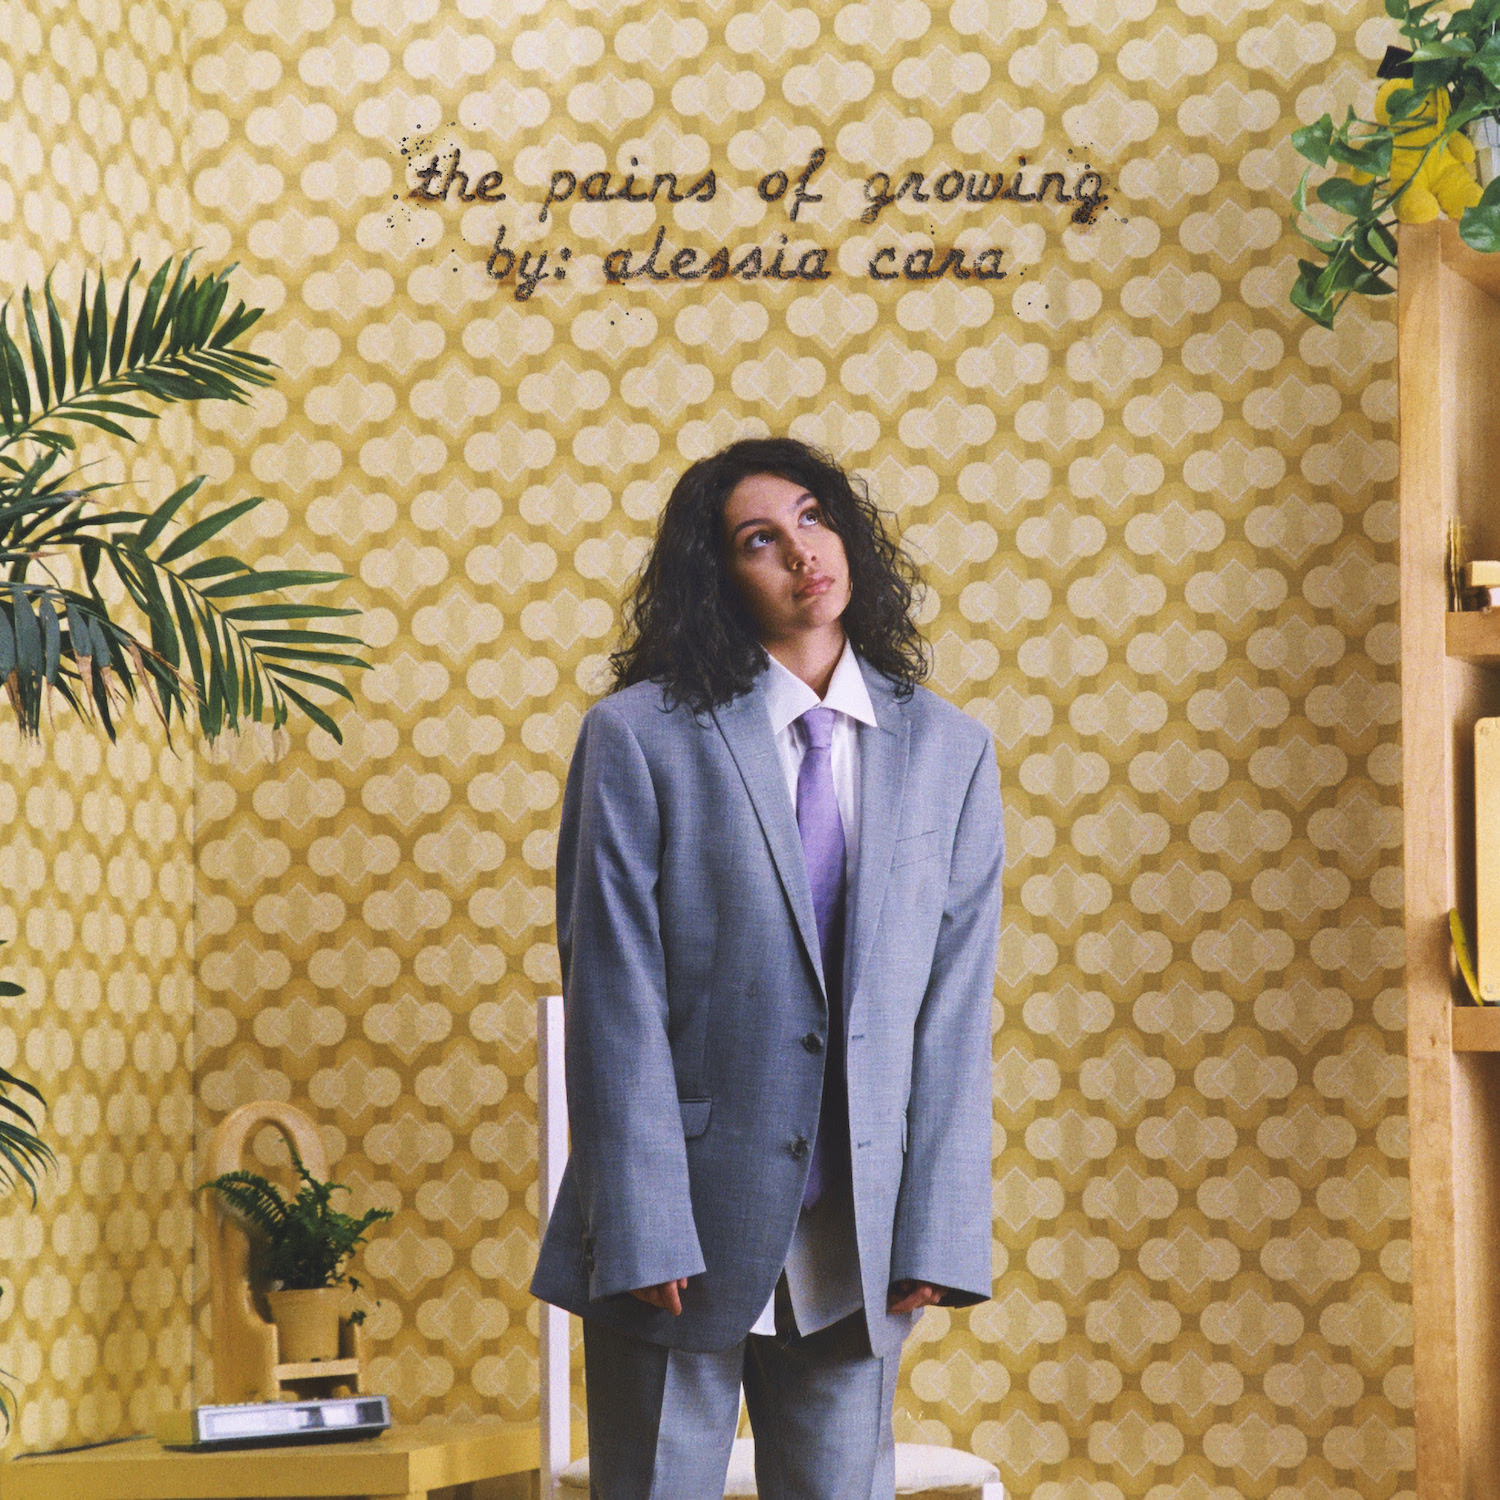 Alessia Cara the pains of growing album cover artwork tracklist